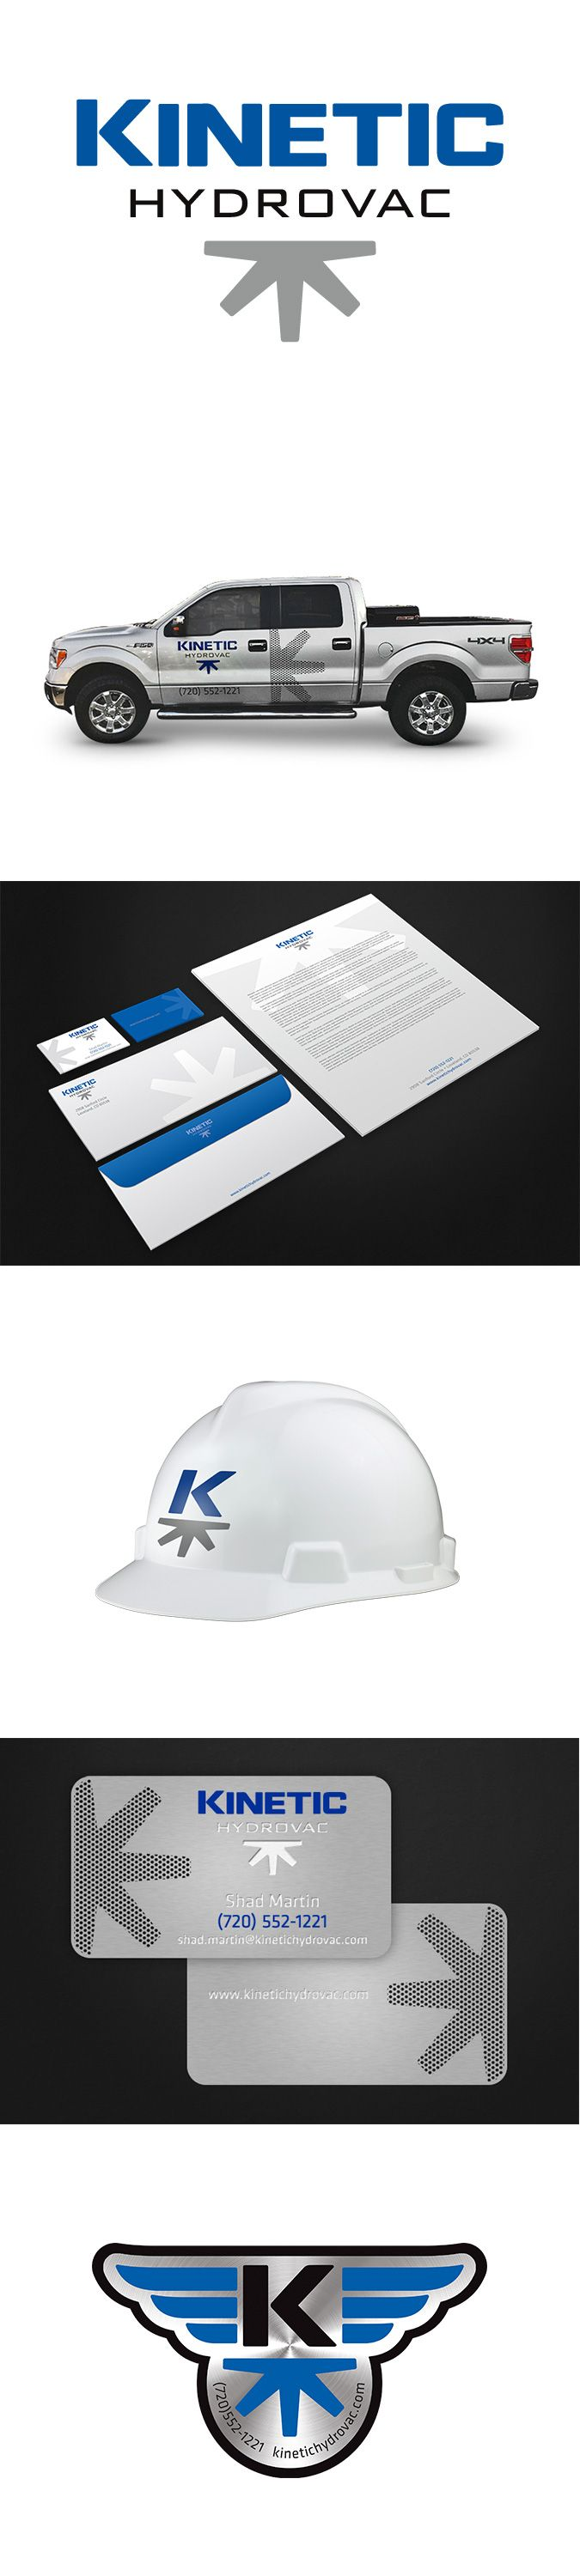 Energy Industry Logos - Kinetic Hydrovac